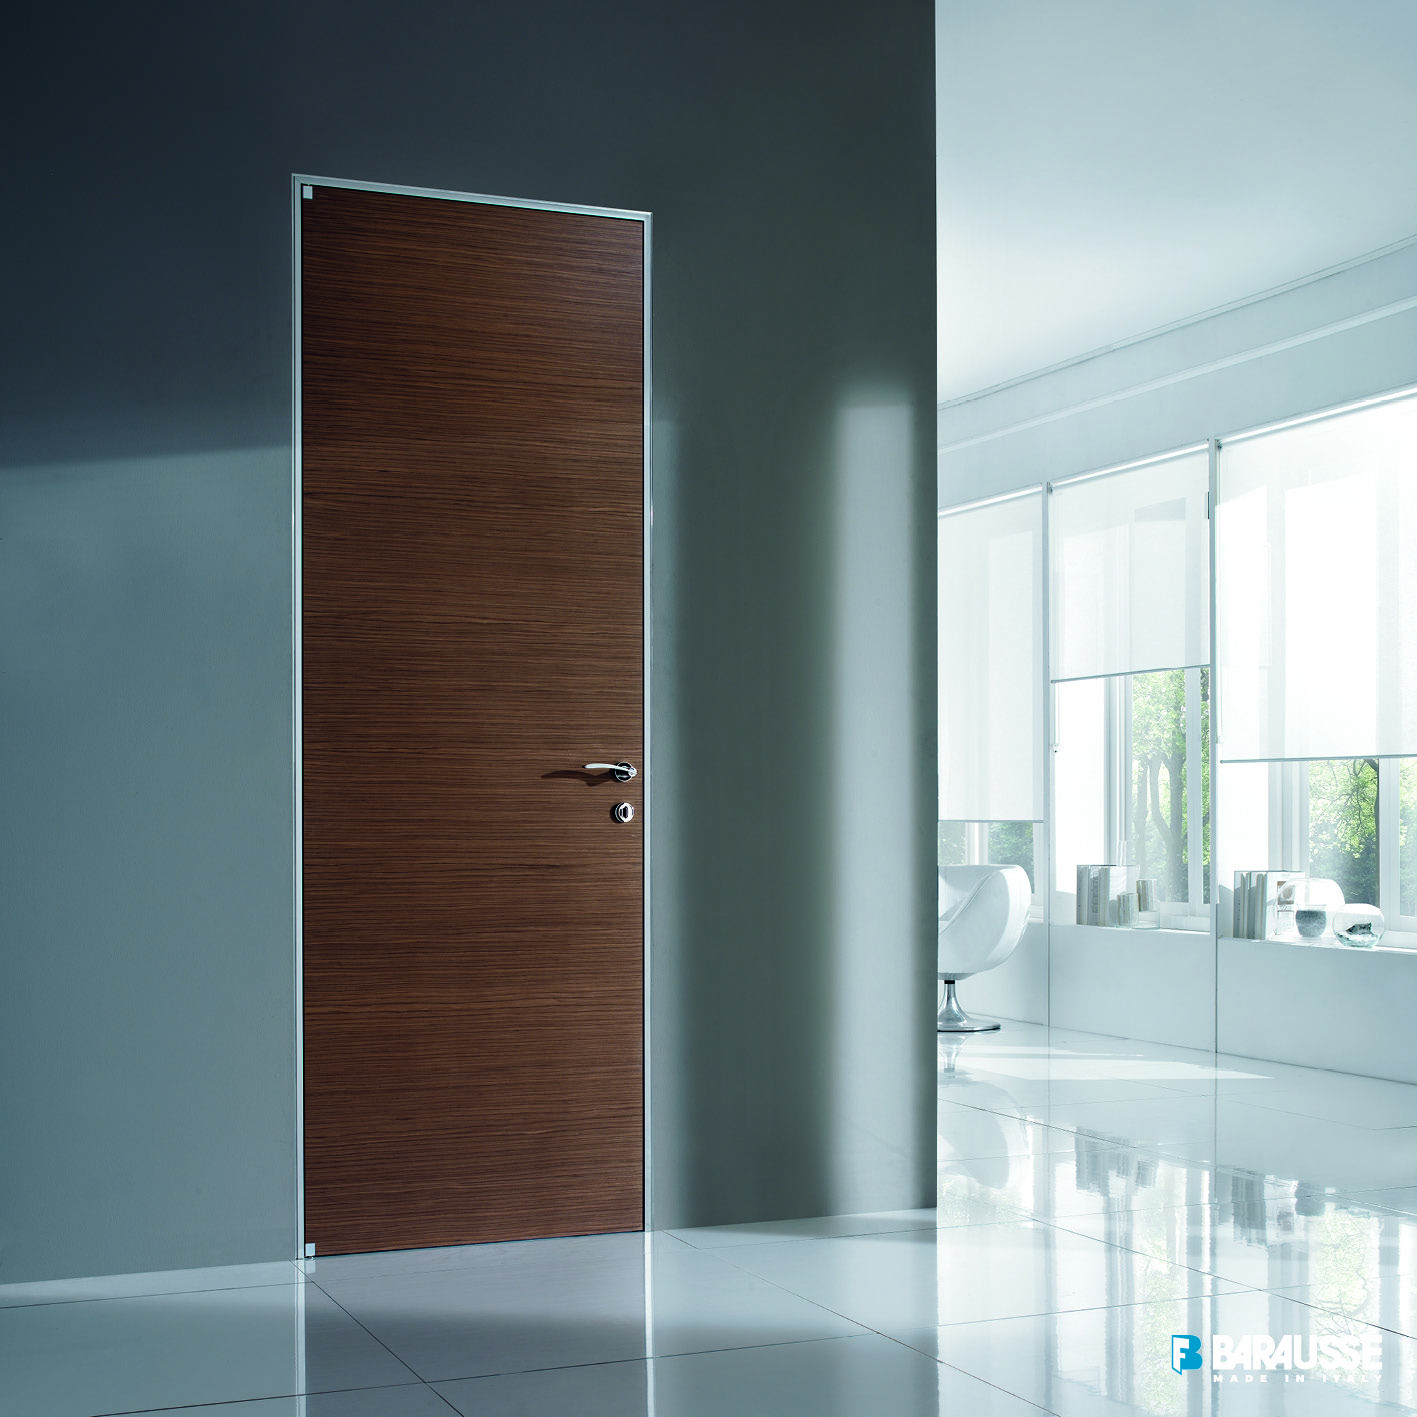 Italian interior doors by barausse visit our showroom for more italian interior doors by barausse visit our showroom for more details or call us at eventelaan Gallery